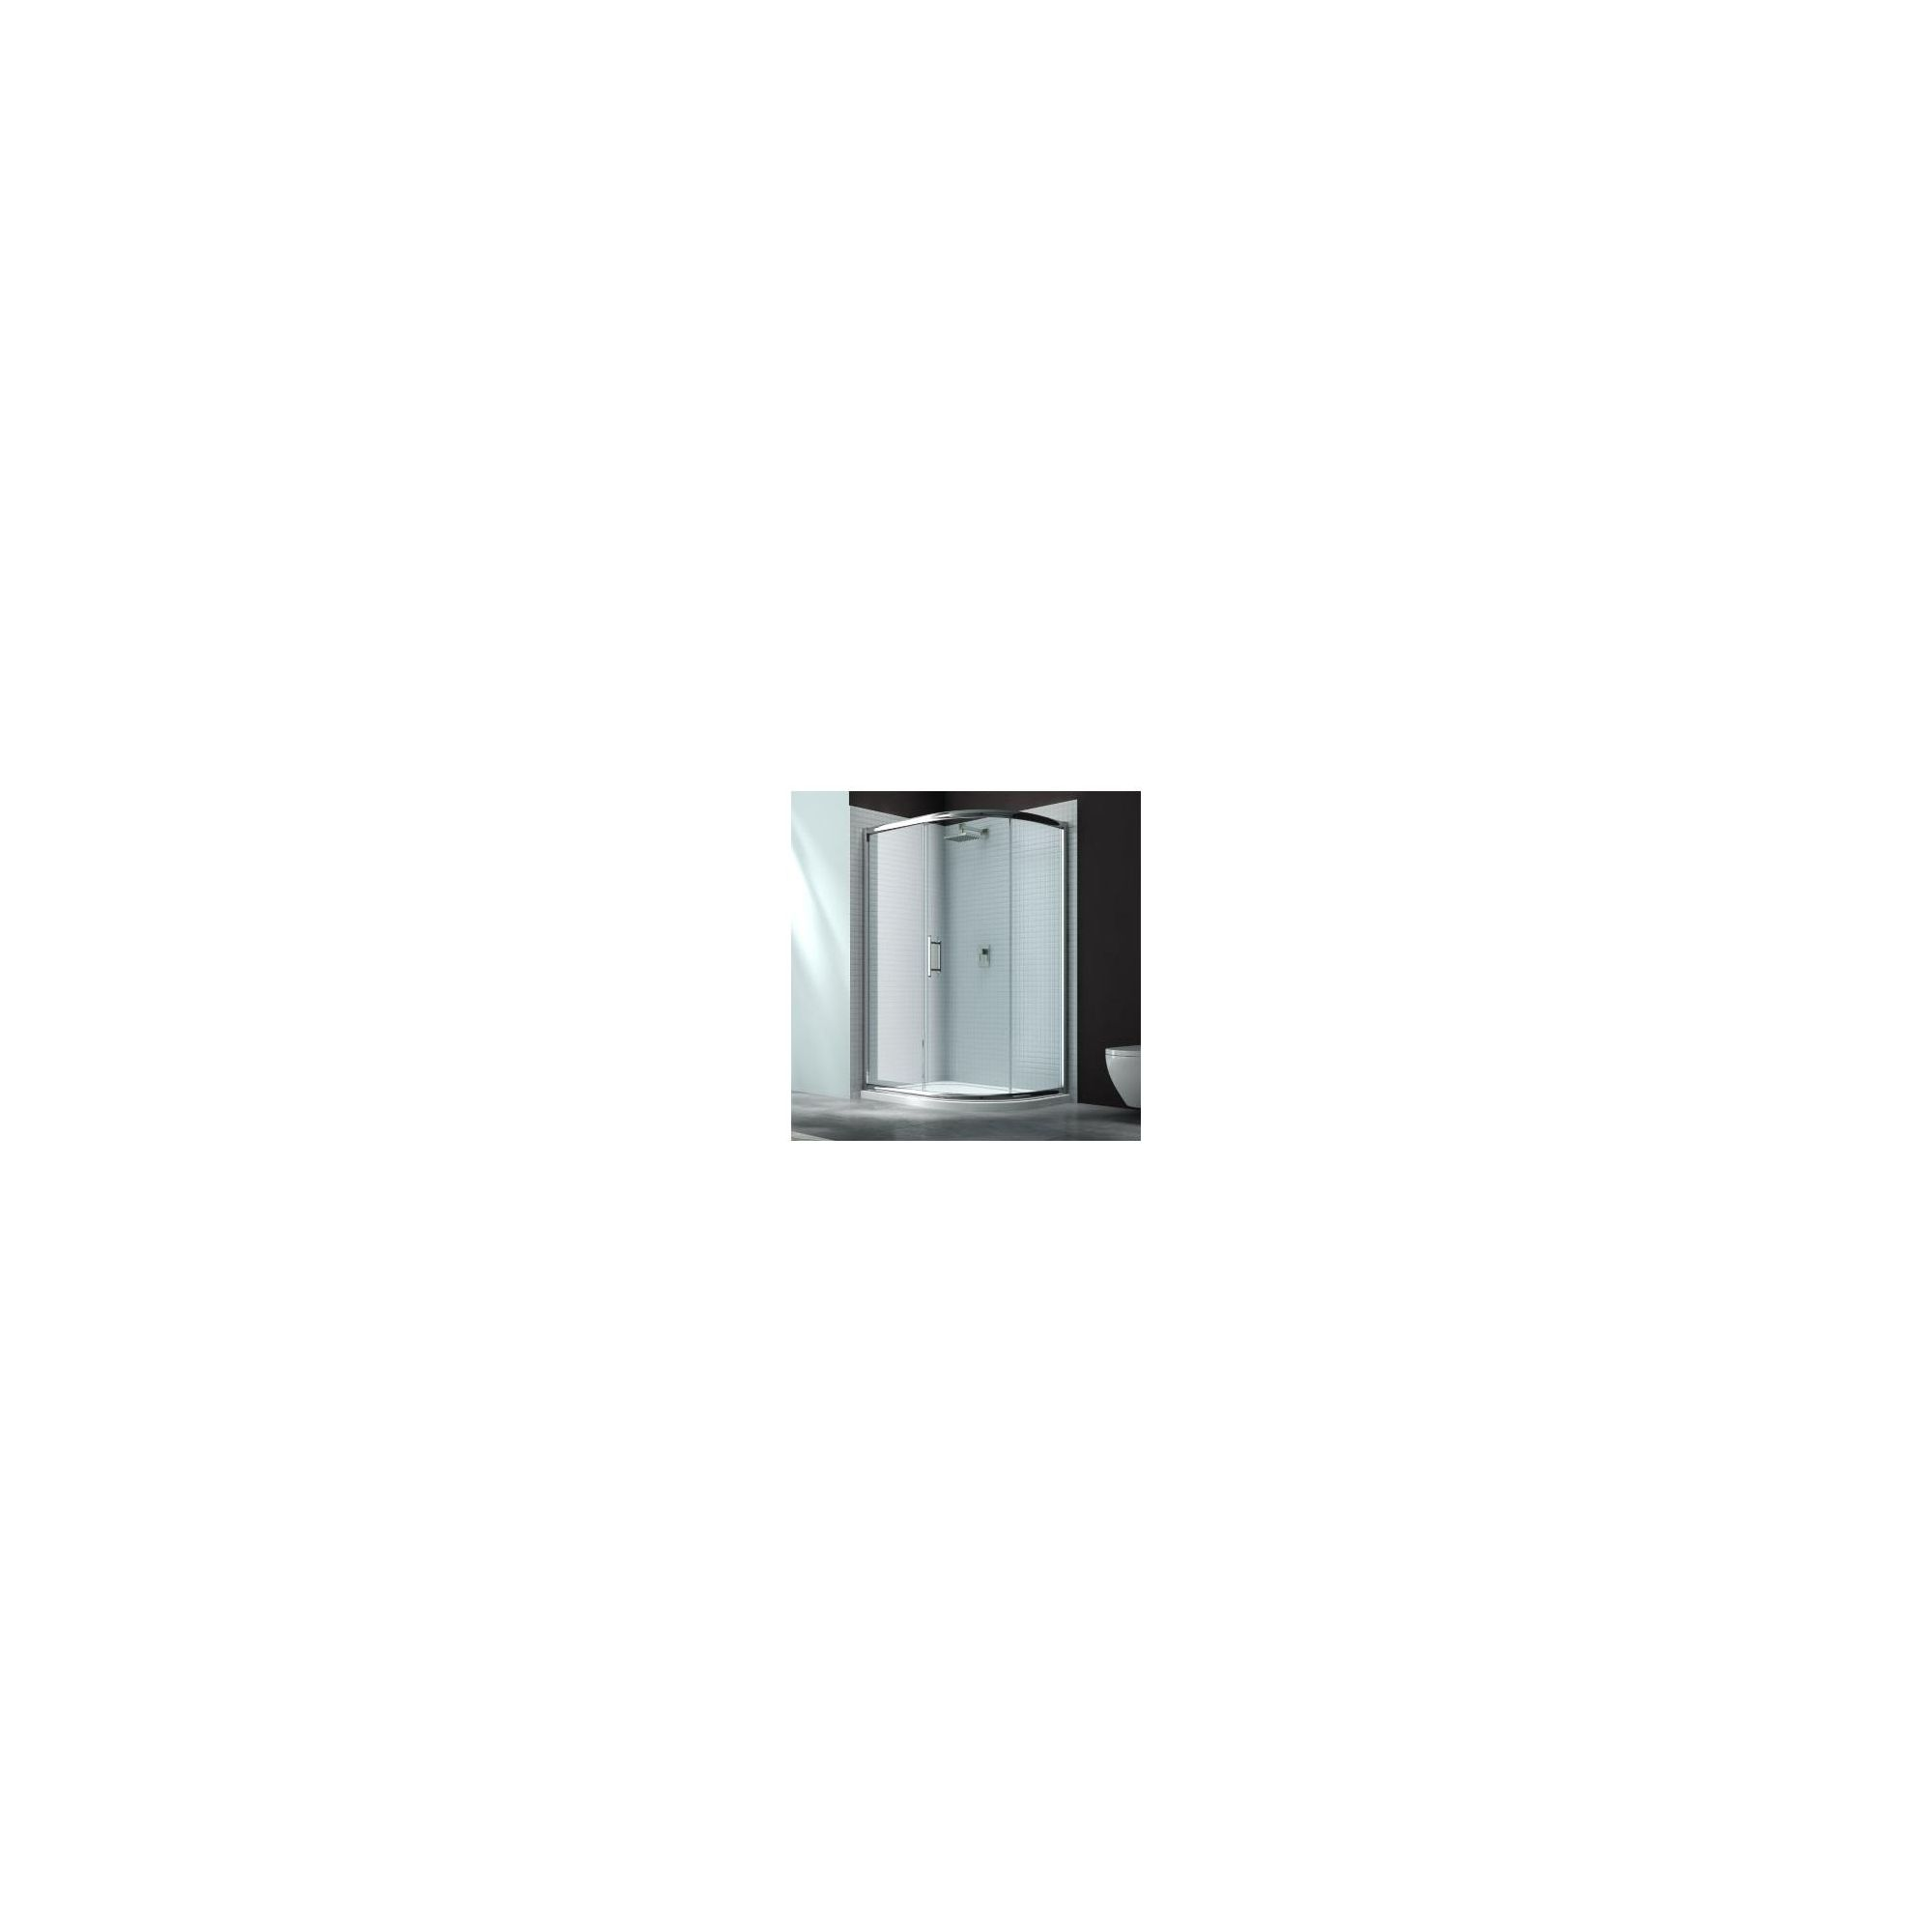 Merlyn Series 6 Offset Quadrant Shower Door, 900mm x 760mm, Chrome Frame, 6mm Glass at Tescos Direct